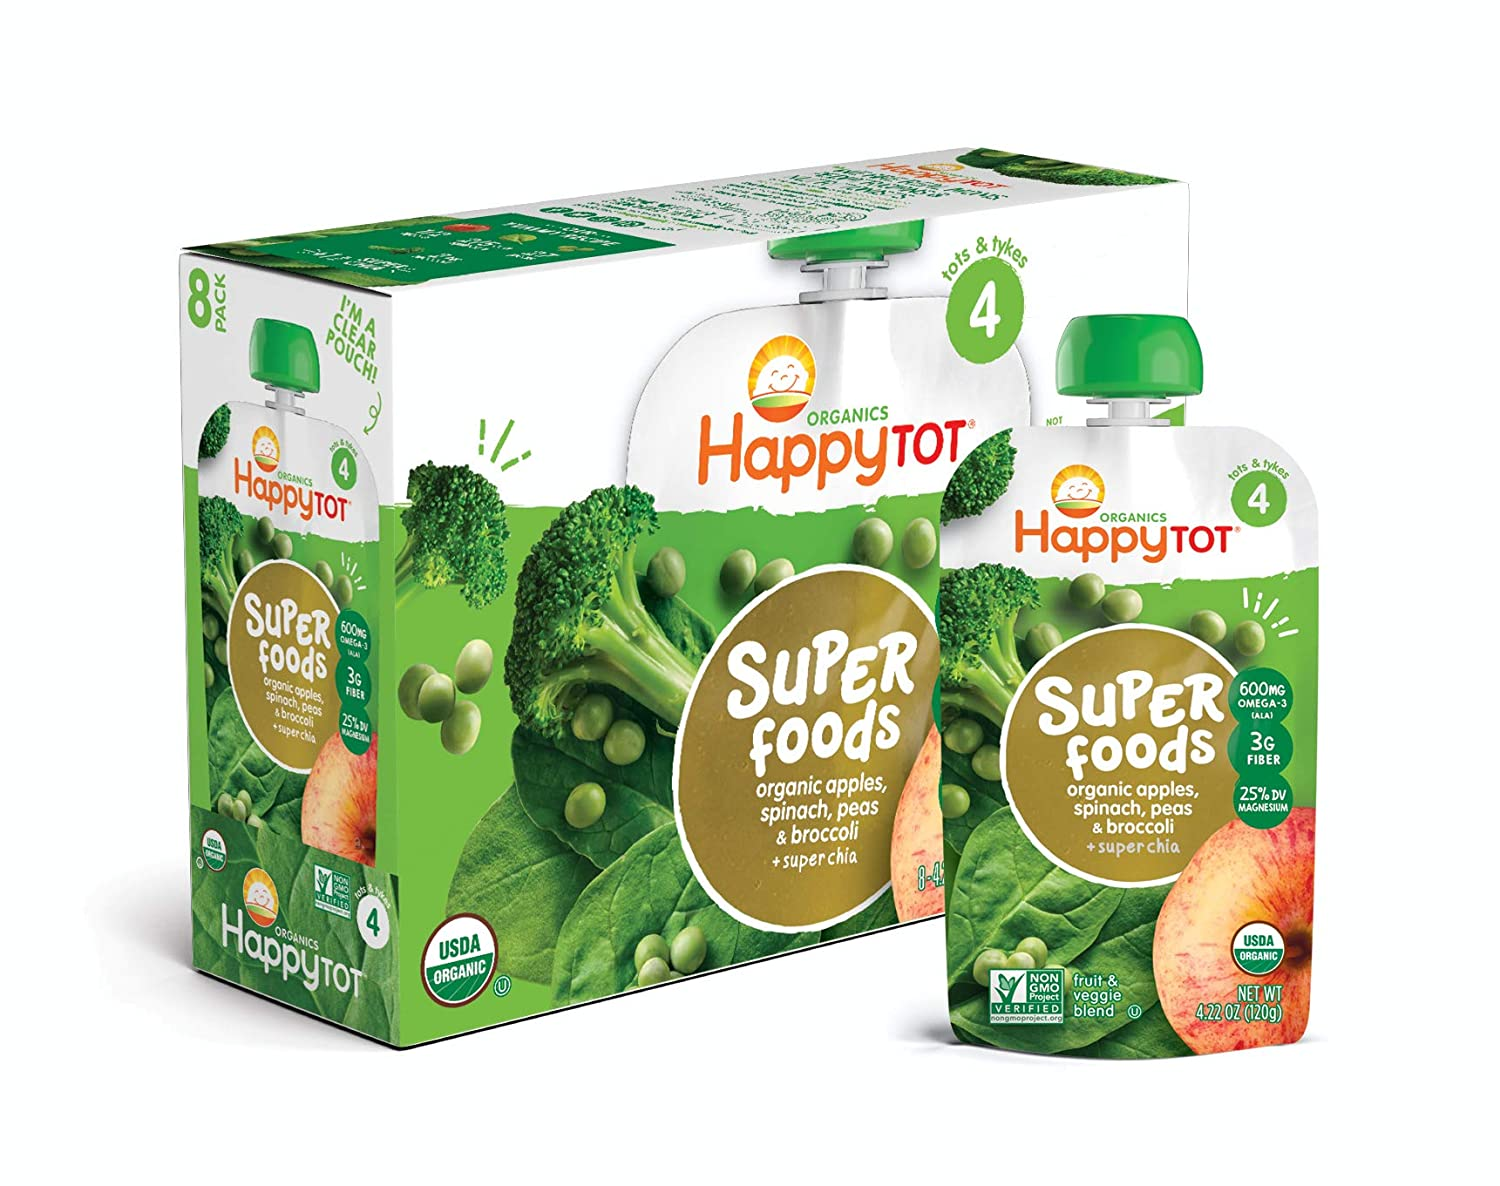 Happy Tot Organic Stage 4 Super Foods Apples Spinach Peas & Broccoli + Super Chia, 4.22 Ounce Pouch (Pack of 16) (Packaging May Vary)